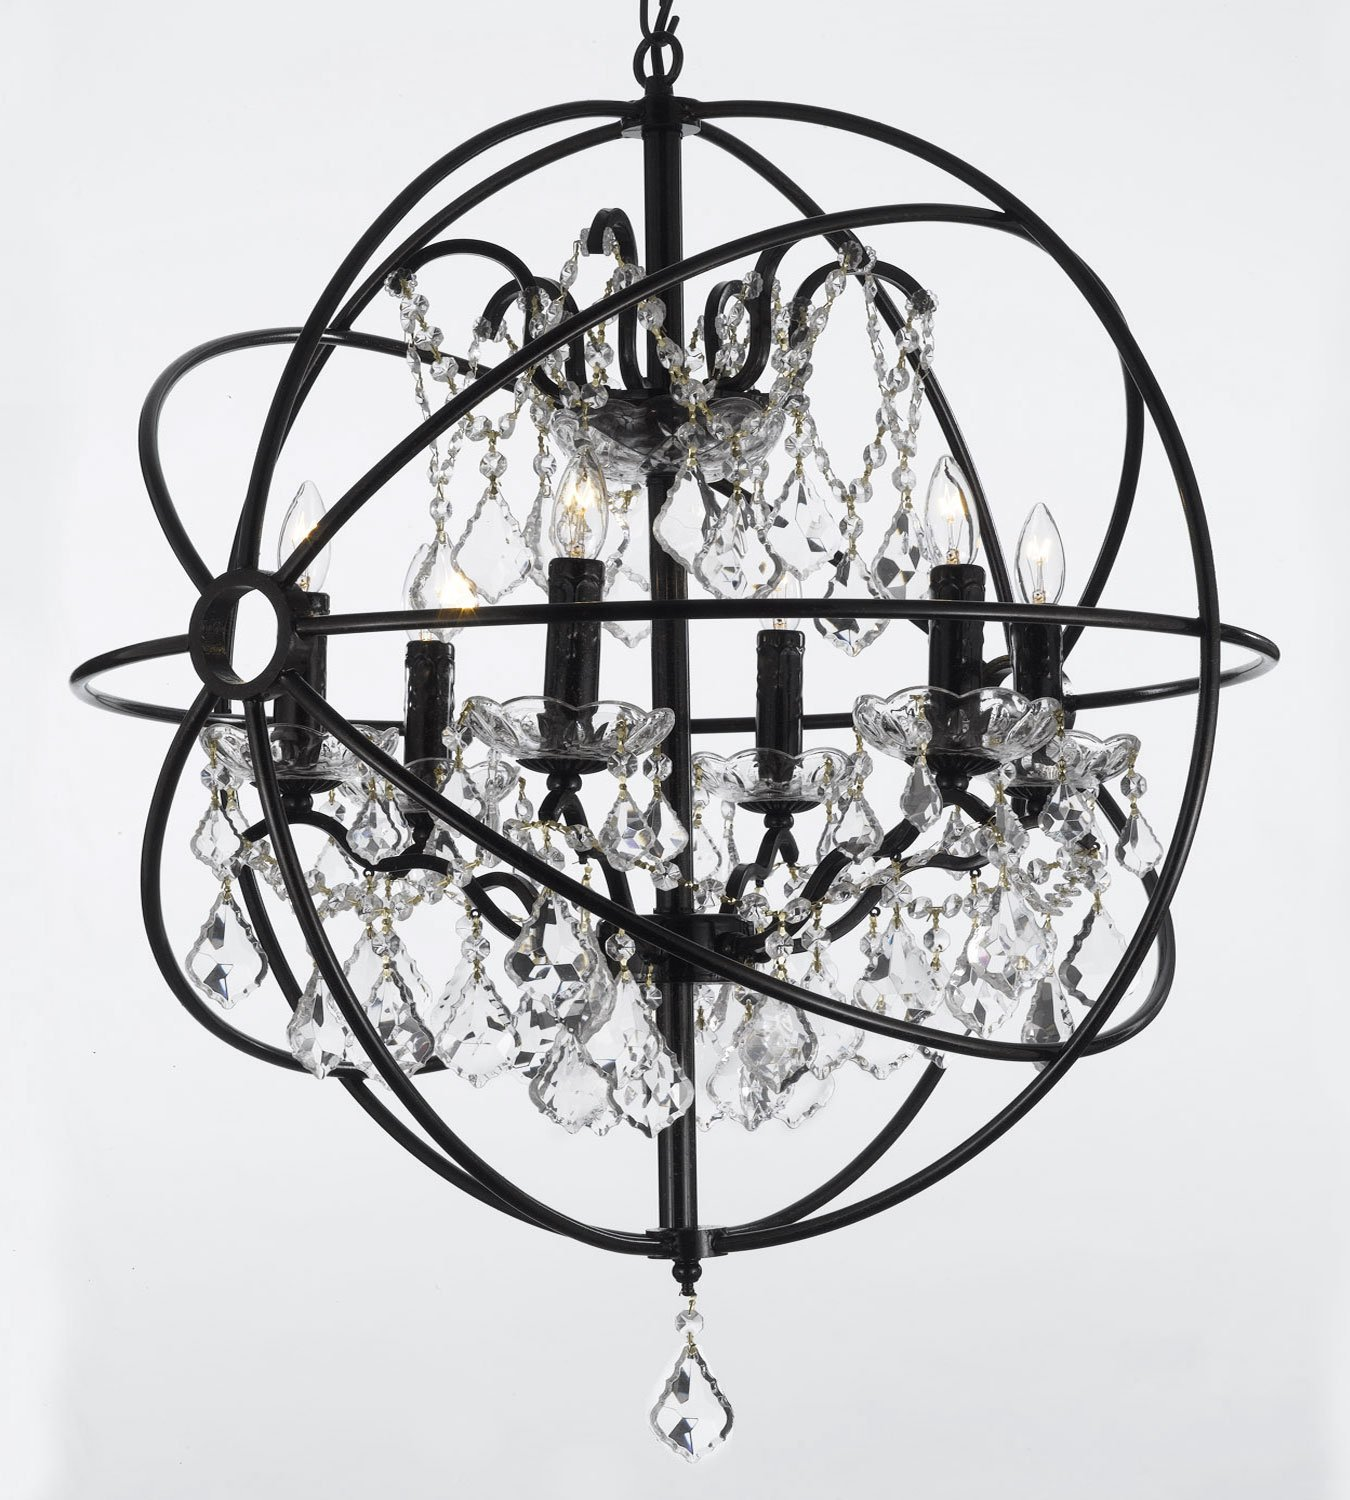 Foucaults orb wrought iron crystal chandelier lighting country foucaults orb wrought iron crystal chandelier lighting country french 6 lights ht25 x wd24 ceiling fixture sphere amazon aloadofball Gallery